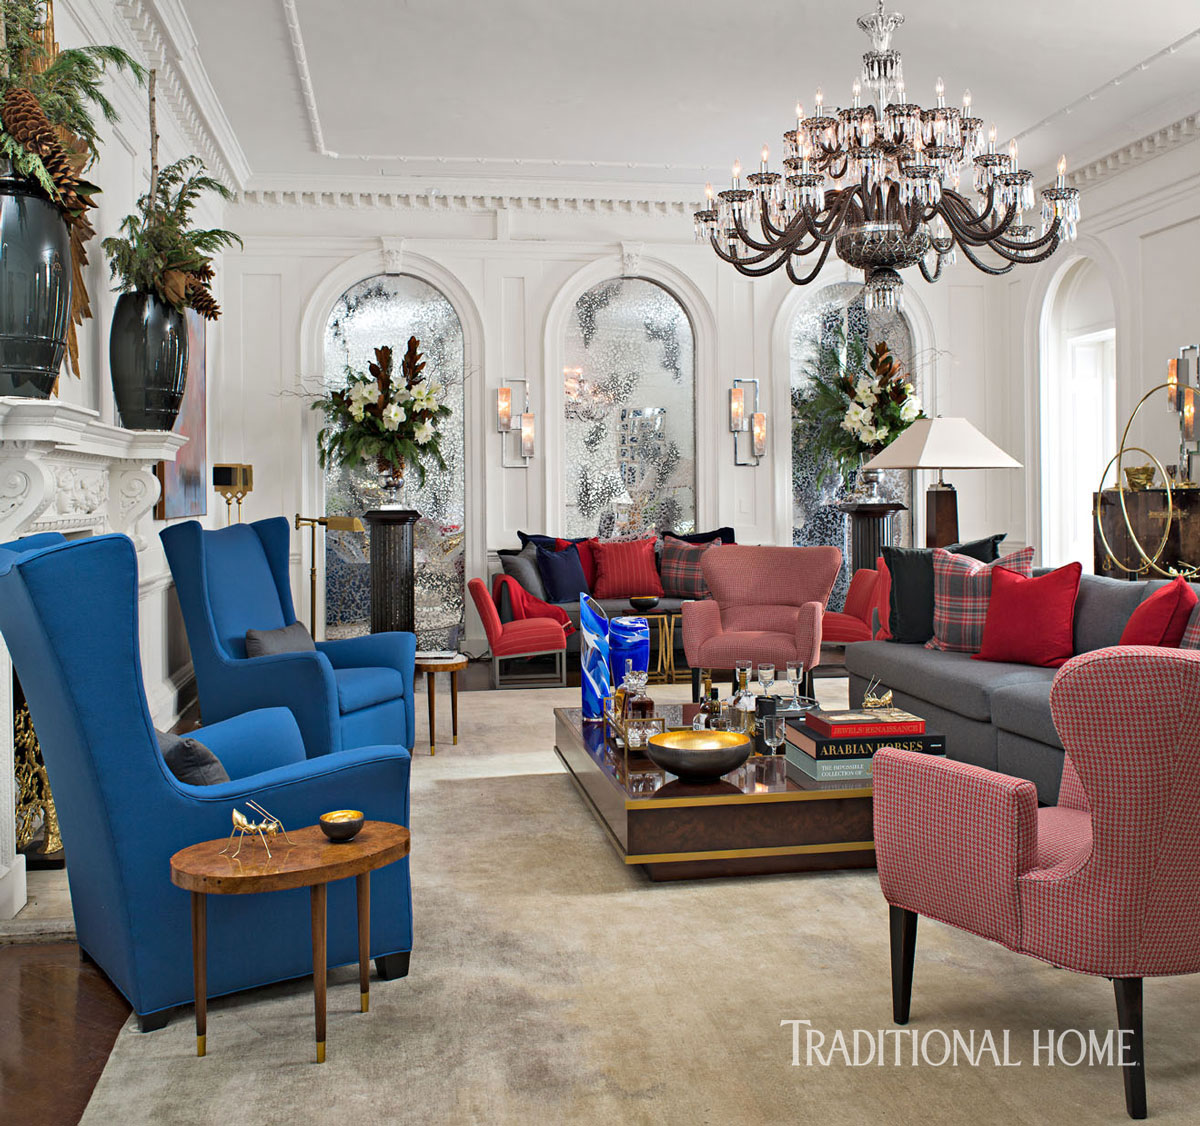 Traditional Home: 2015 Holiday House Designer Showhouse